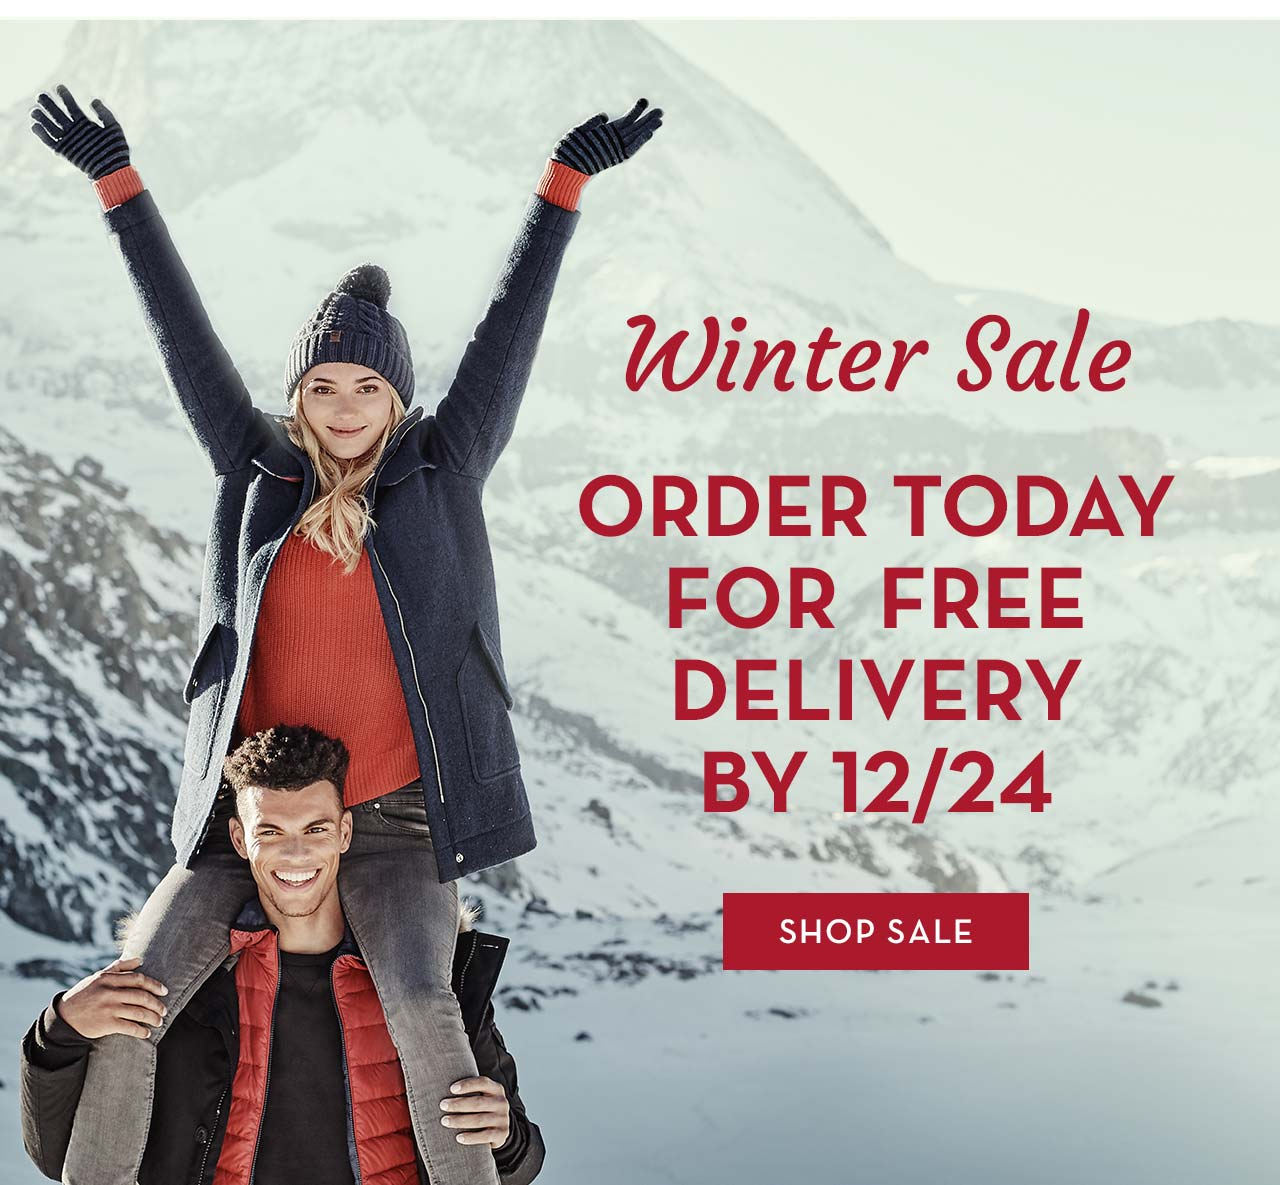 Winter Sale Order Today For Free Delivery By 12/24 Shop Sale